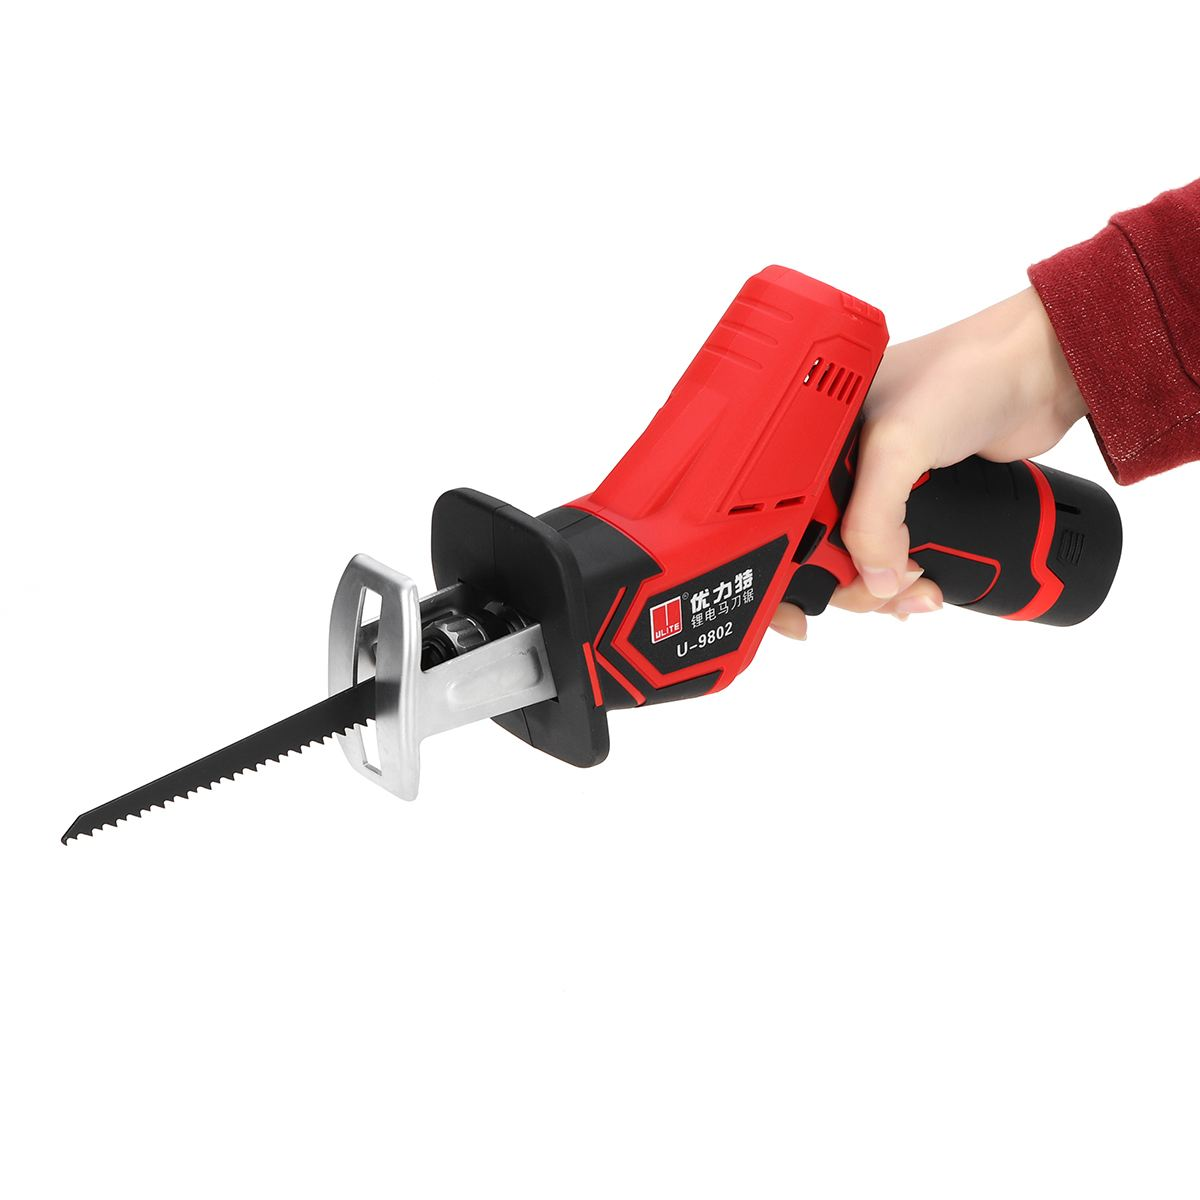 12V 1300mAh Rechargeable Electric Reciprocating Saw Saber Convert Adapter Cordless Wood Metal Plastic Pruning Chainsaw Tool